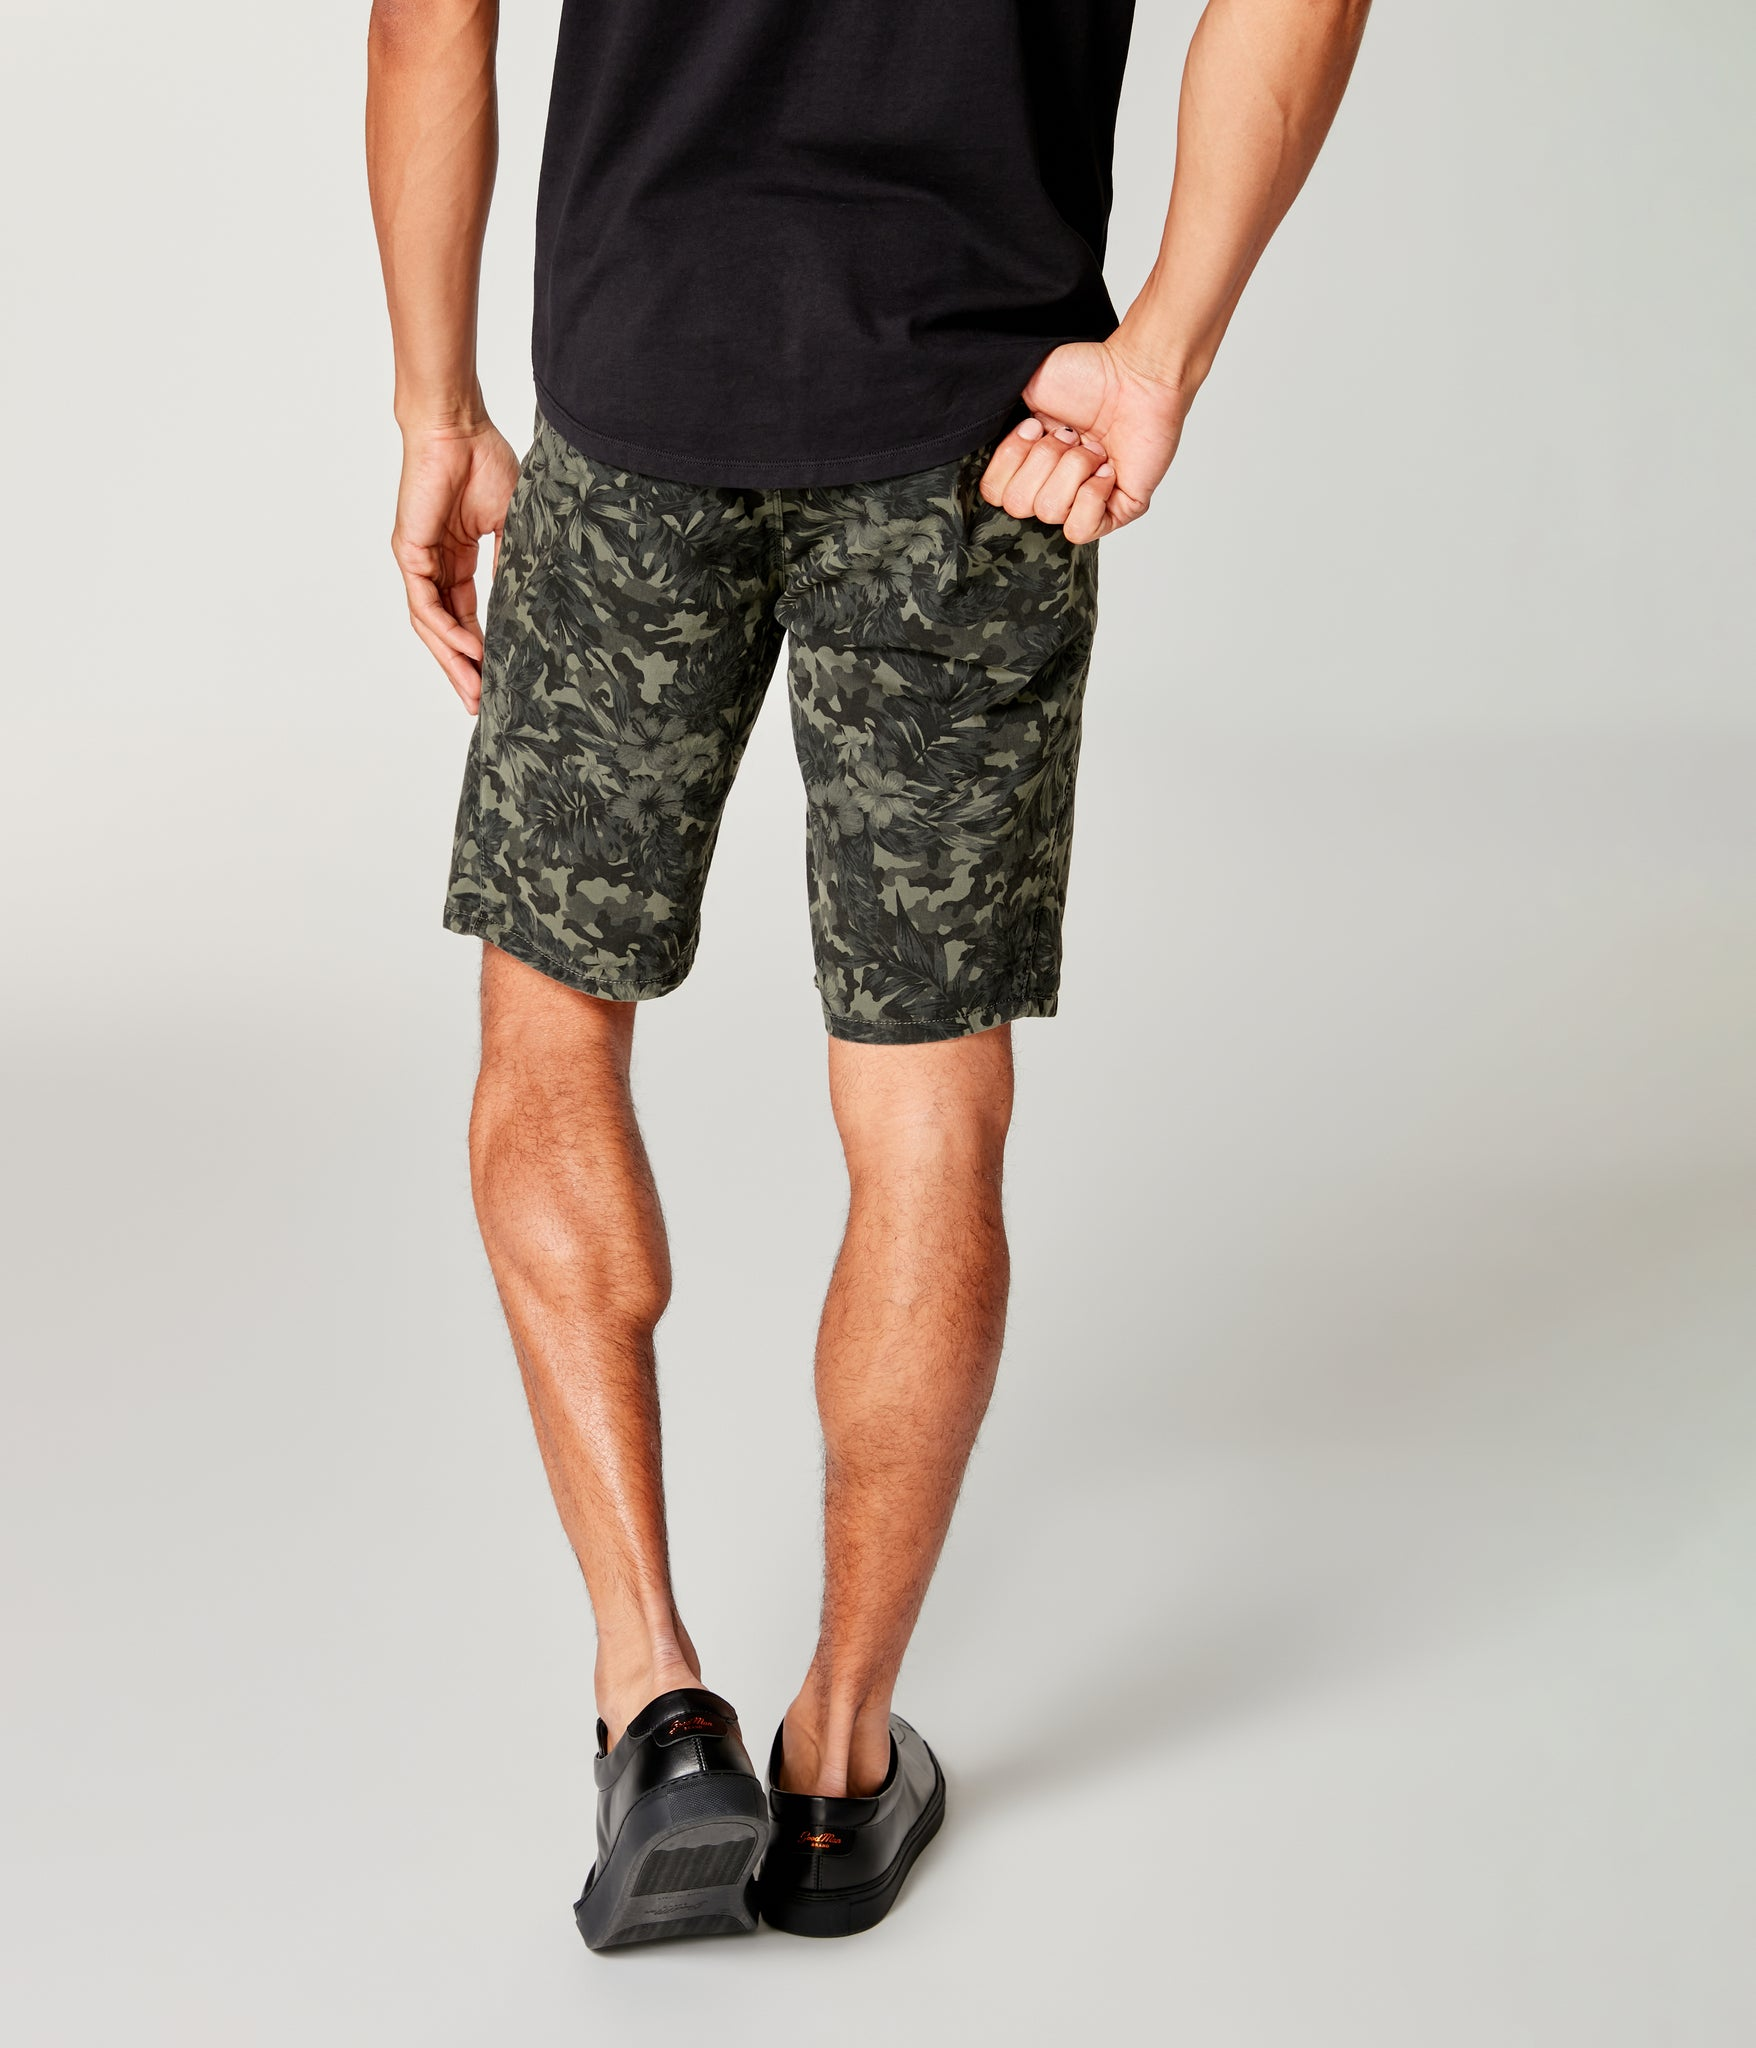 Monaco Stretch Twill Camo Wrap Short - Military Green